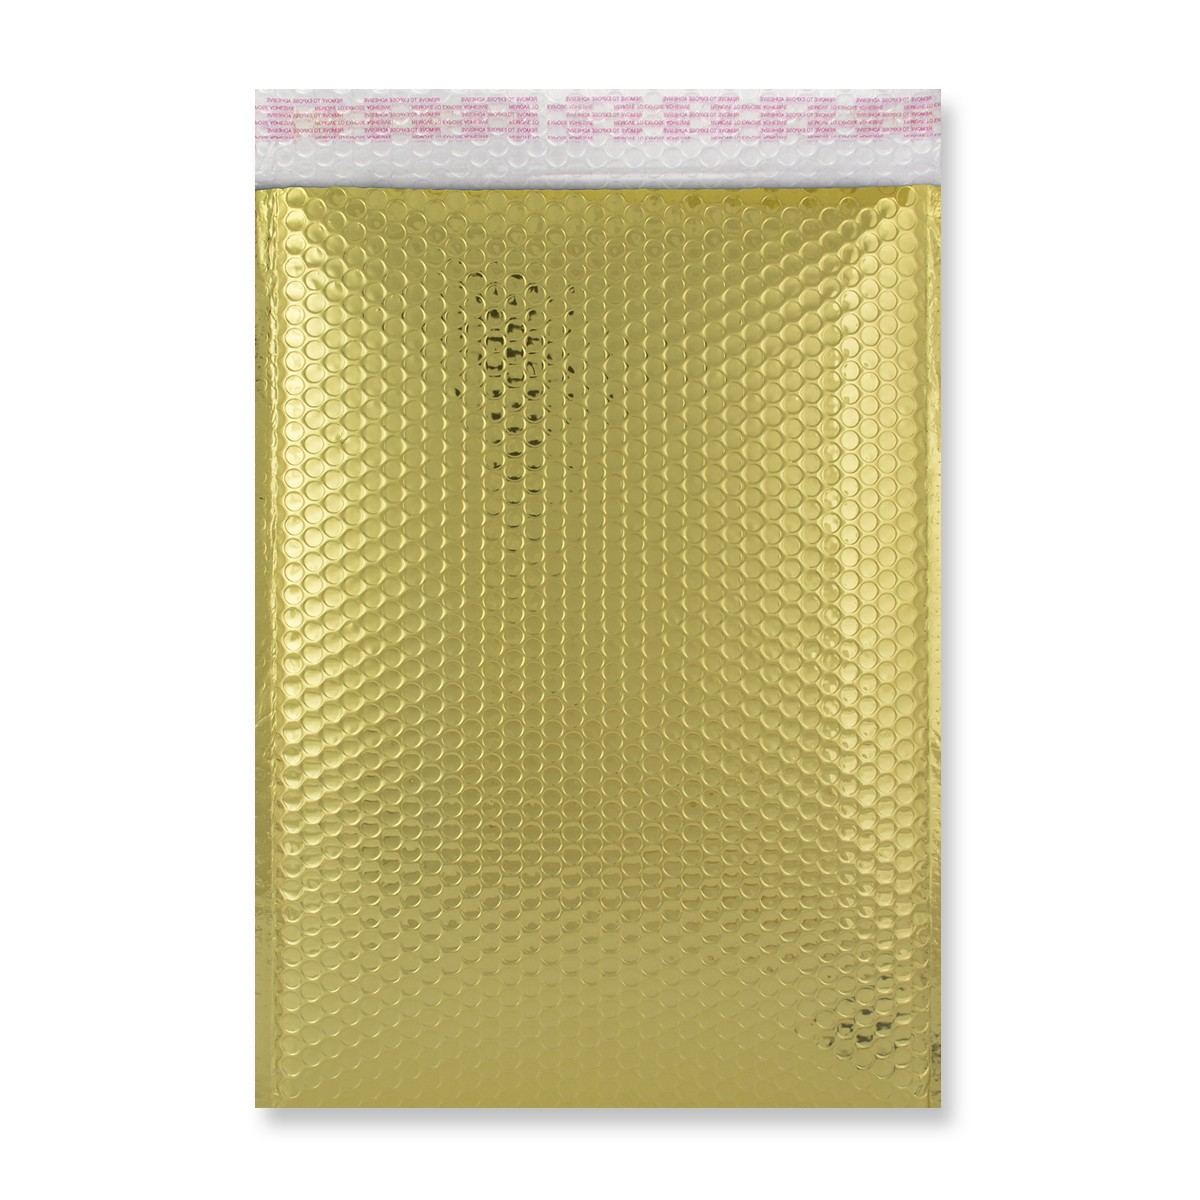 C3 GLOSS METALLIC GOLD PADDED ENVELOPES (450 x 320MM)